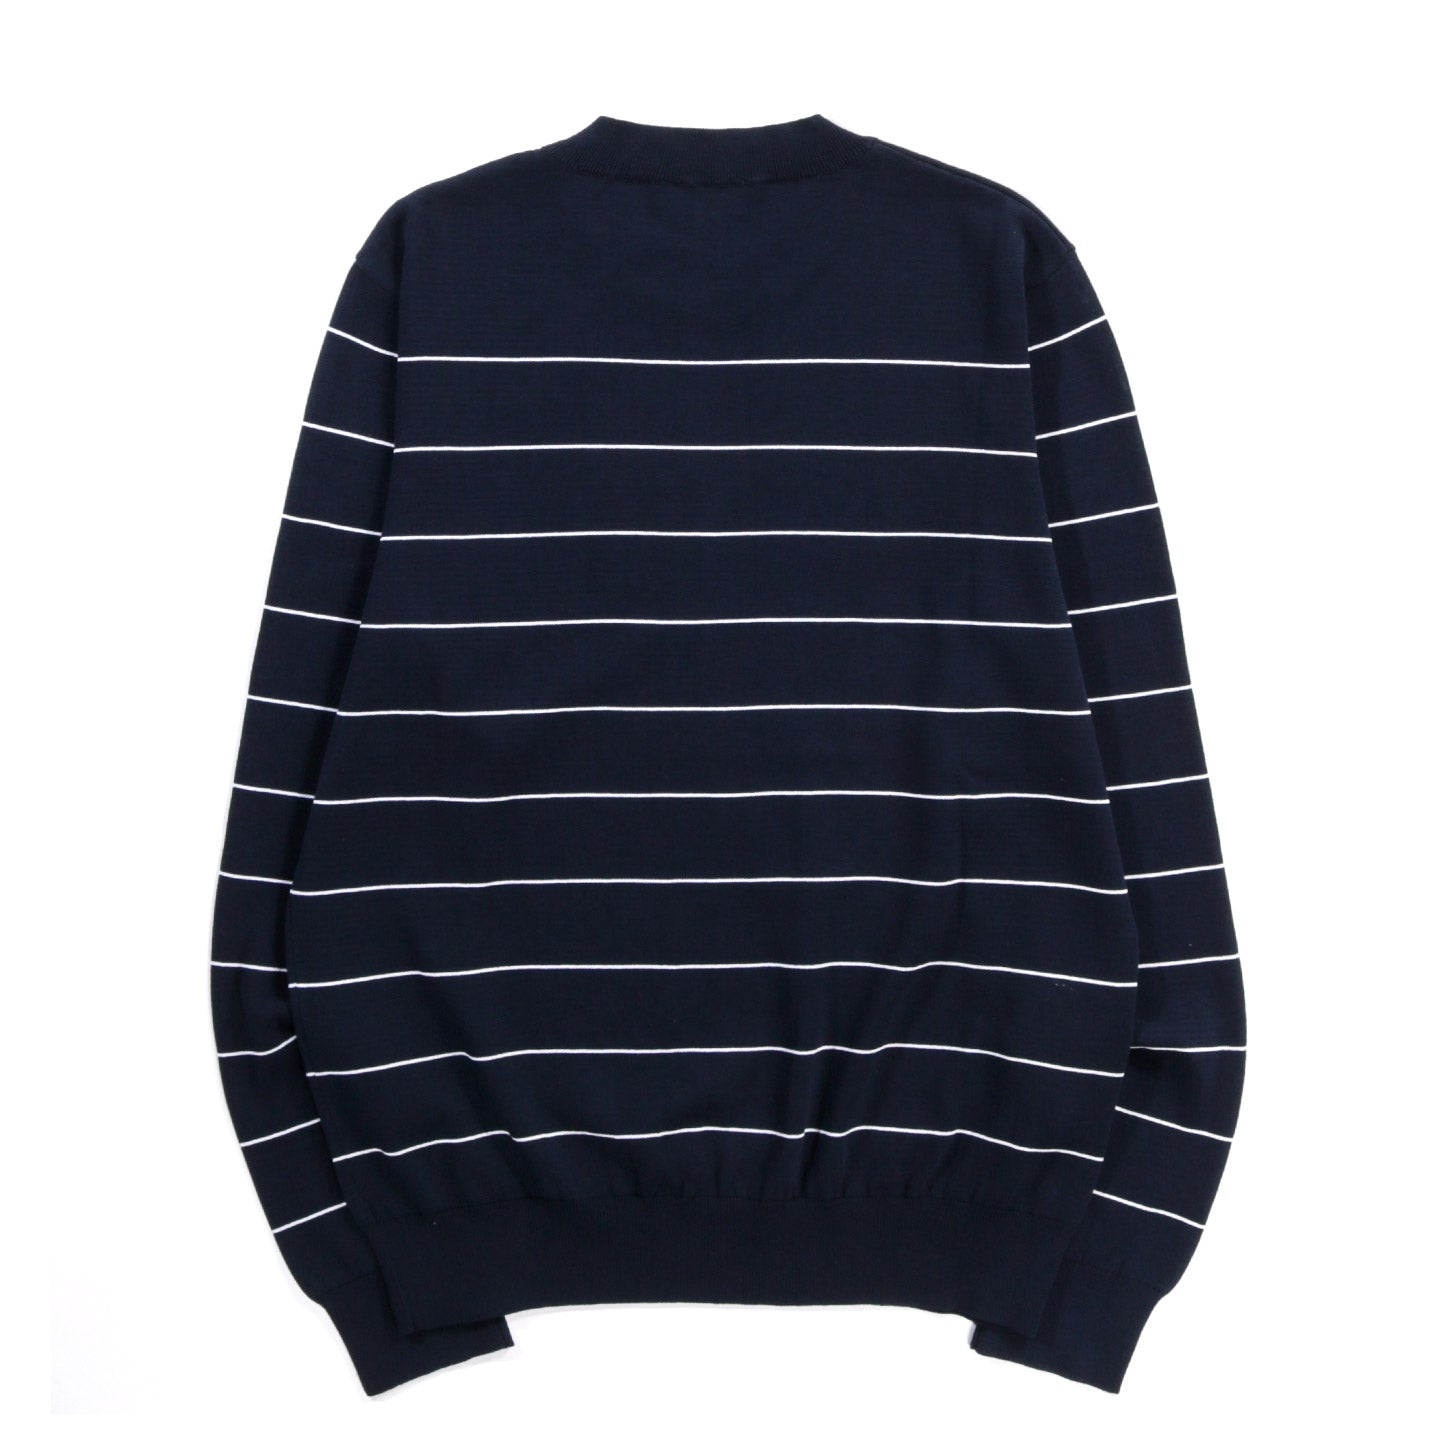 A.P.C. TERENCE SWEATER NAVY